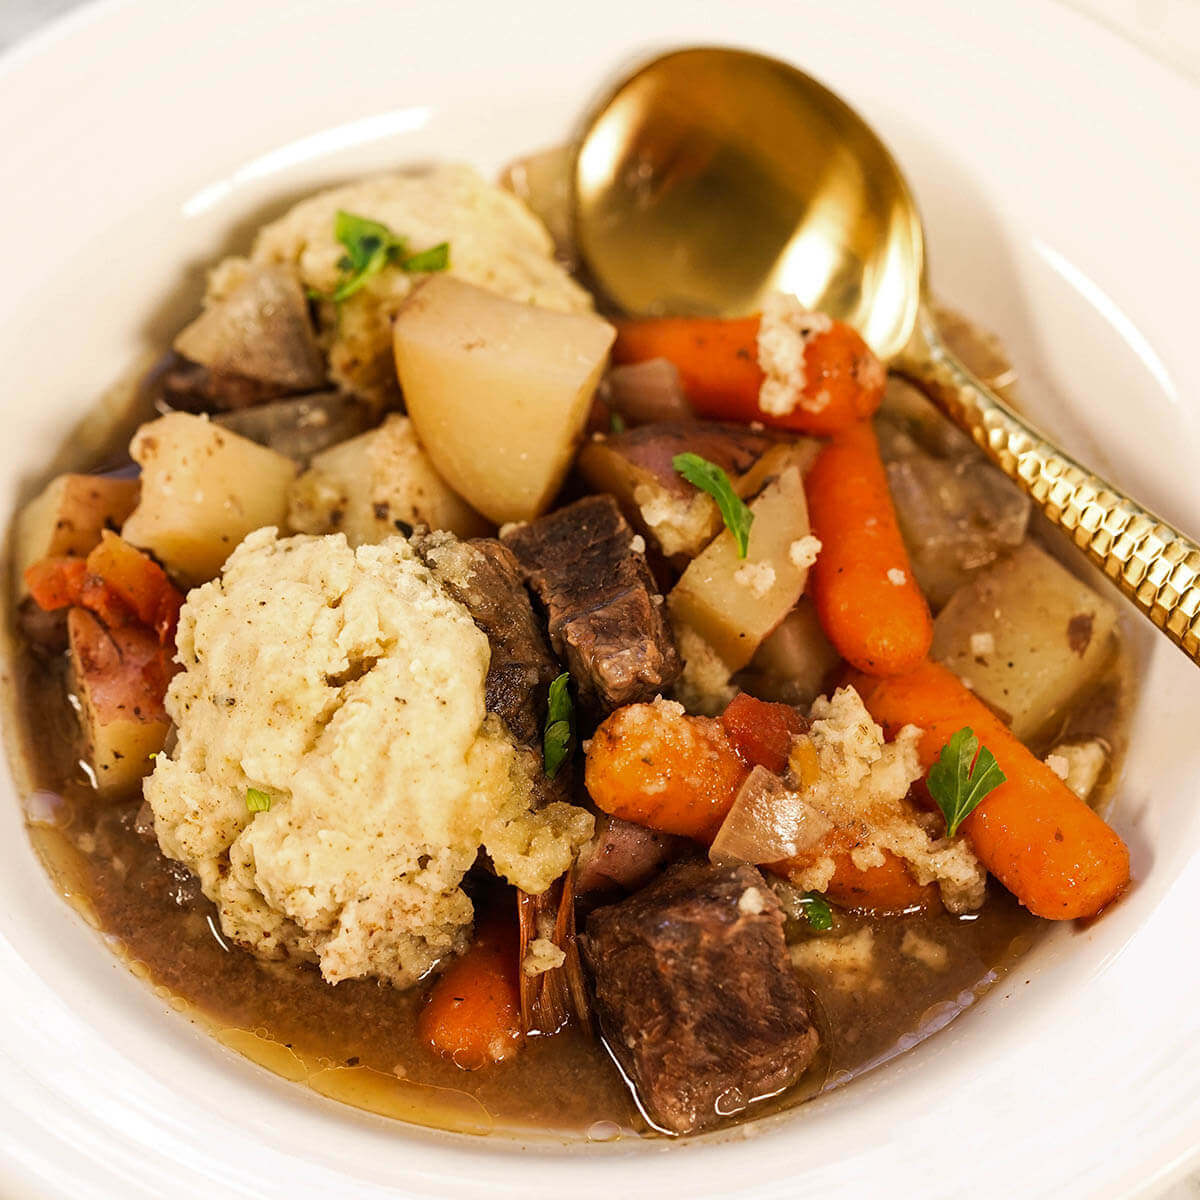 Beef Stew with dumplings in a white bowl.